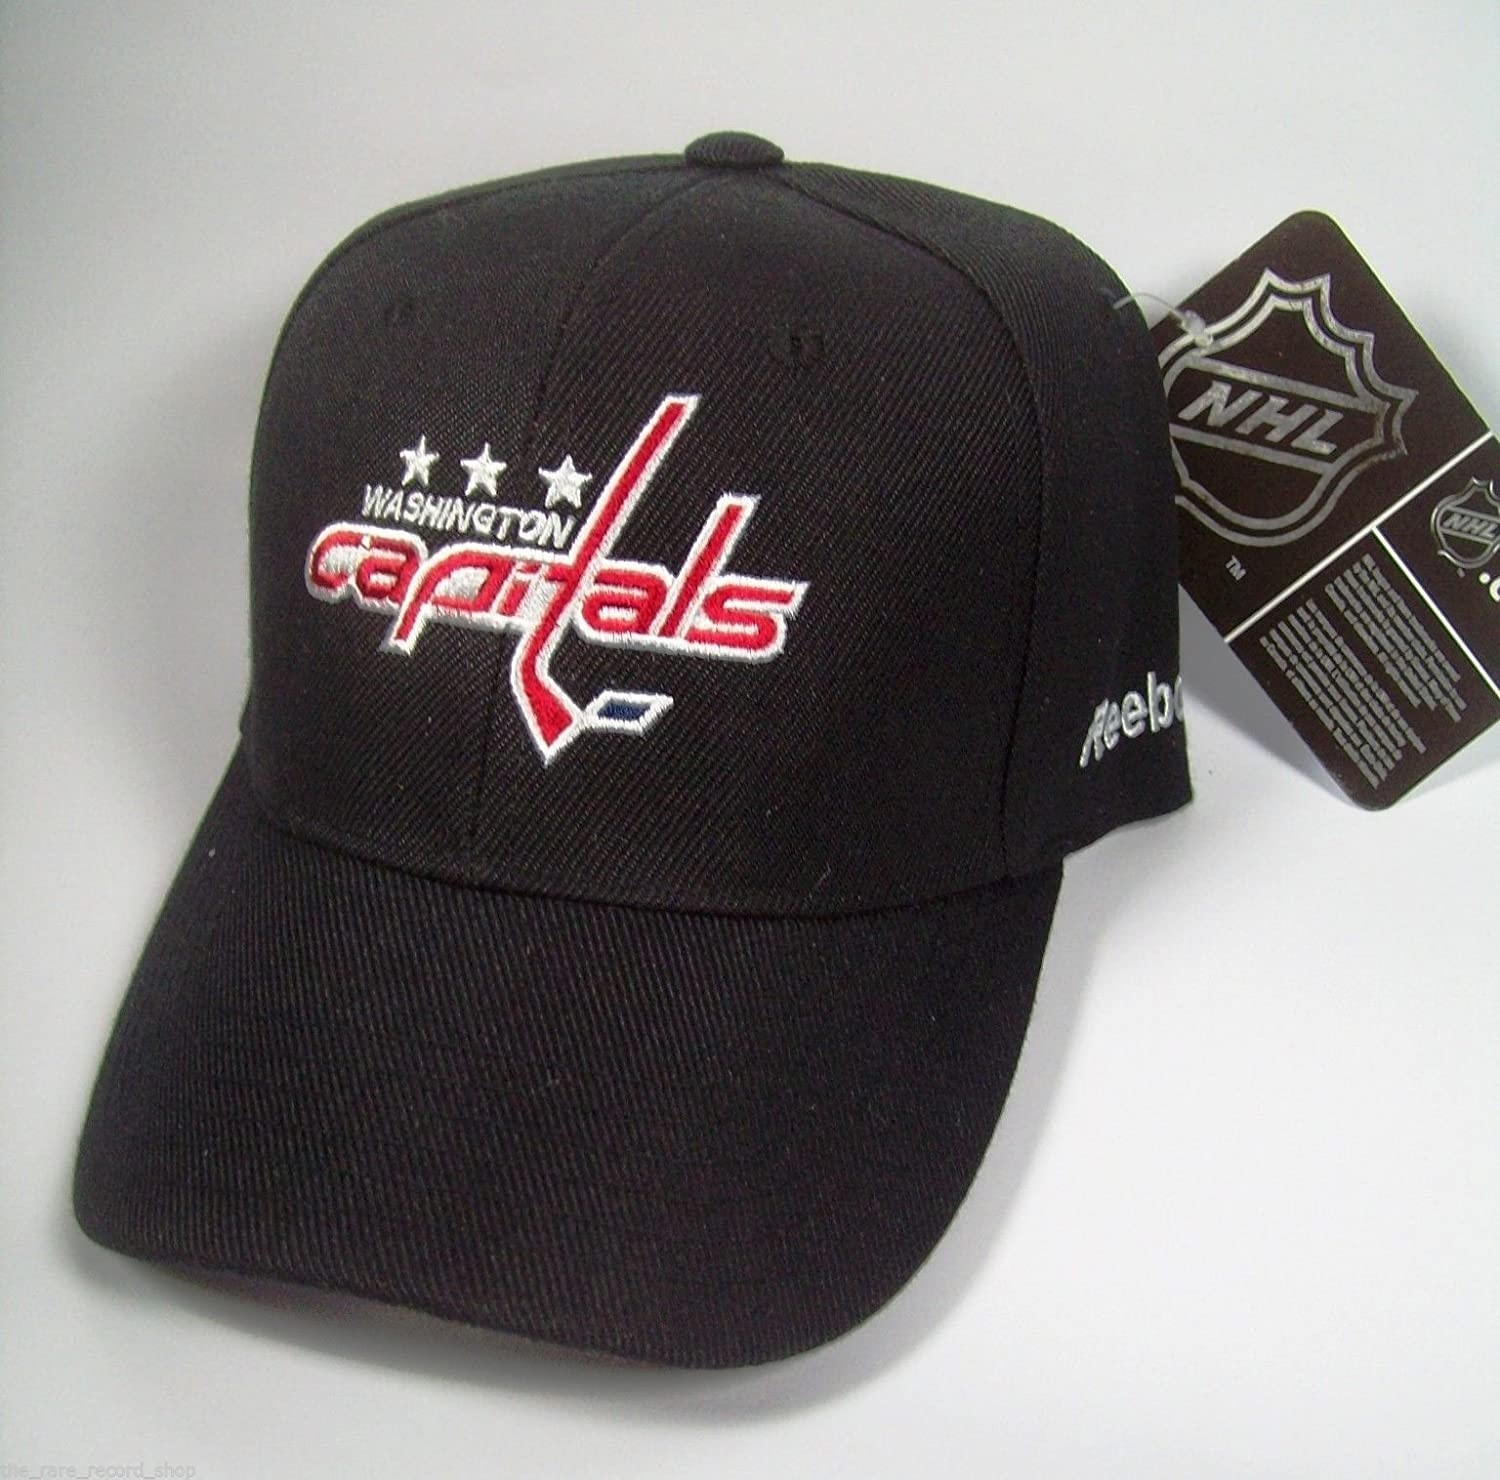 Reebok Black Washington Capitals NHL Hockey Basic Logo Adjustable Cap Hat сумка на ремне nhl capitals цвет синий 3 5 л 58015